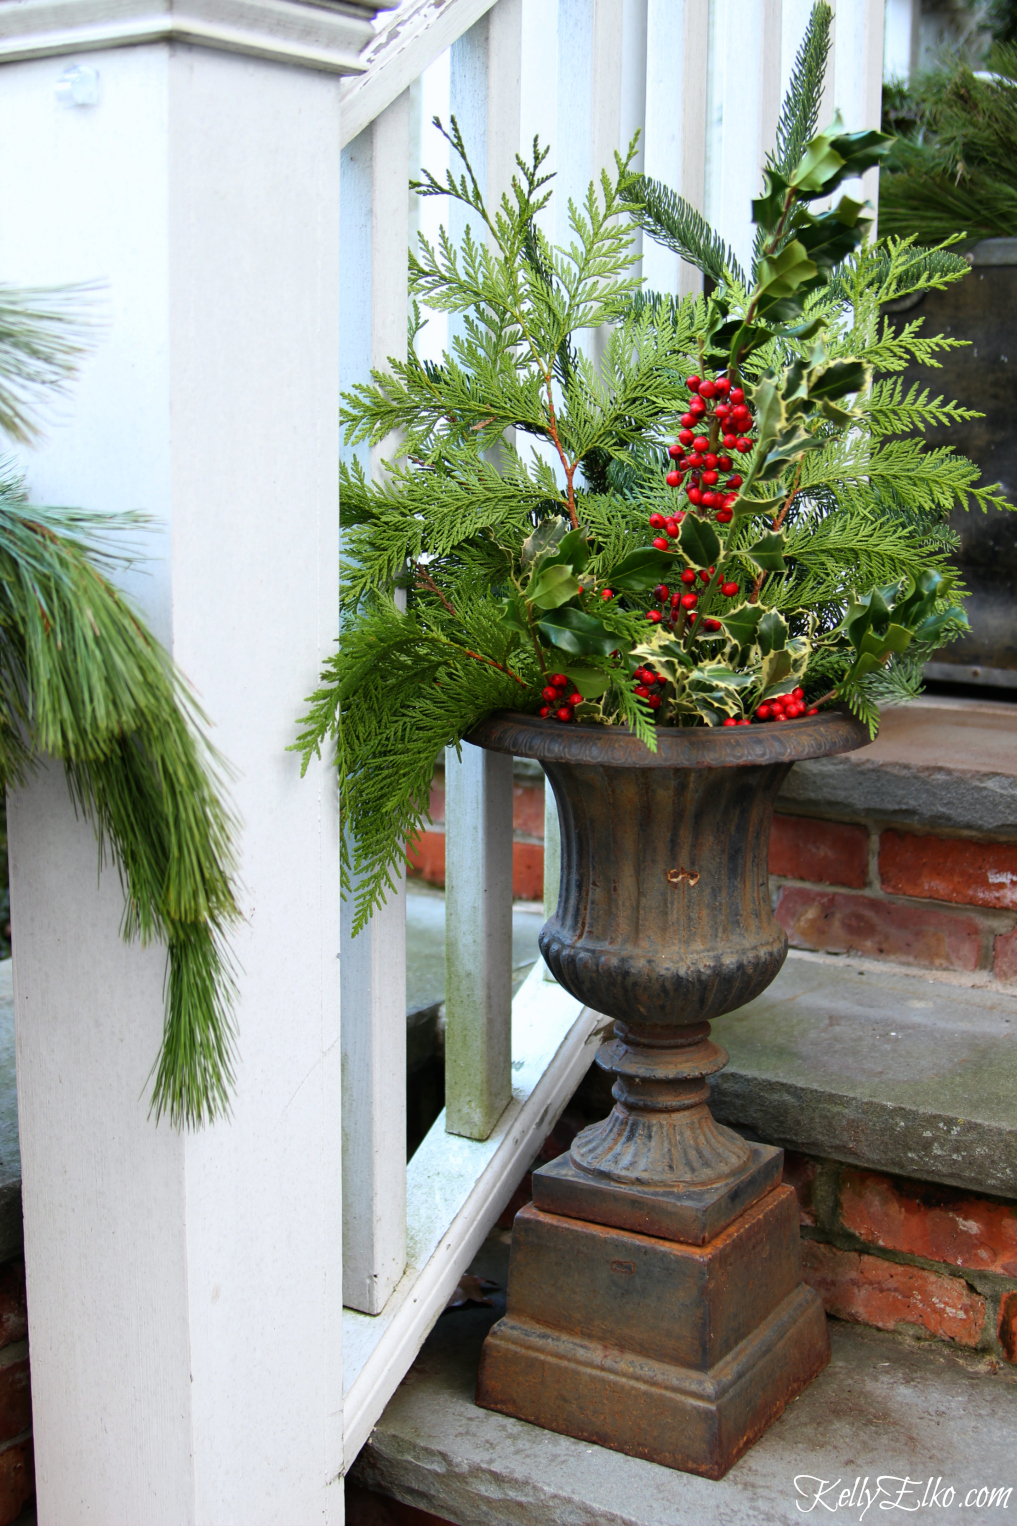 Christmas porch with fresh greens in an antique urn kellyelko.com